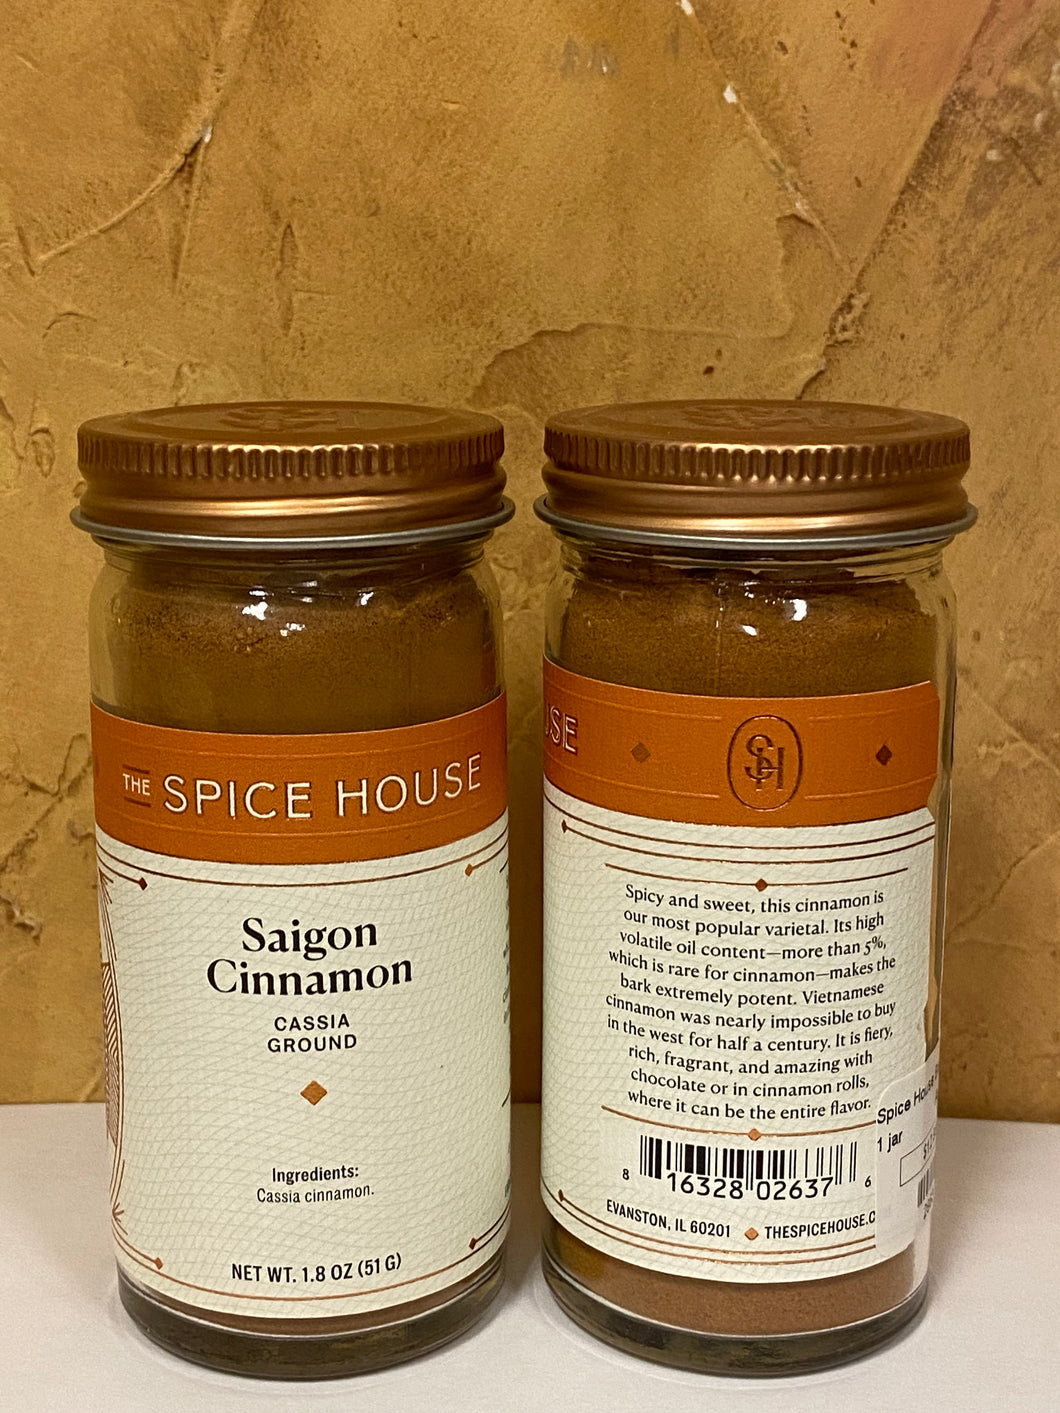 Saigon Cinnamon (Cassia Ground)